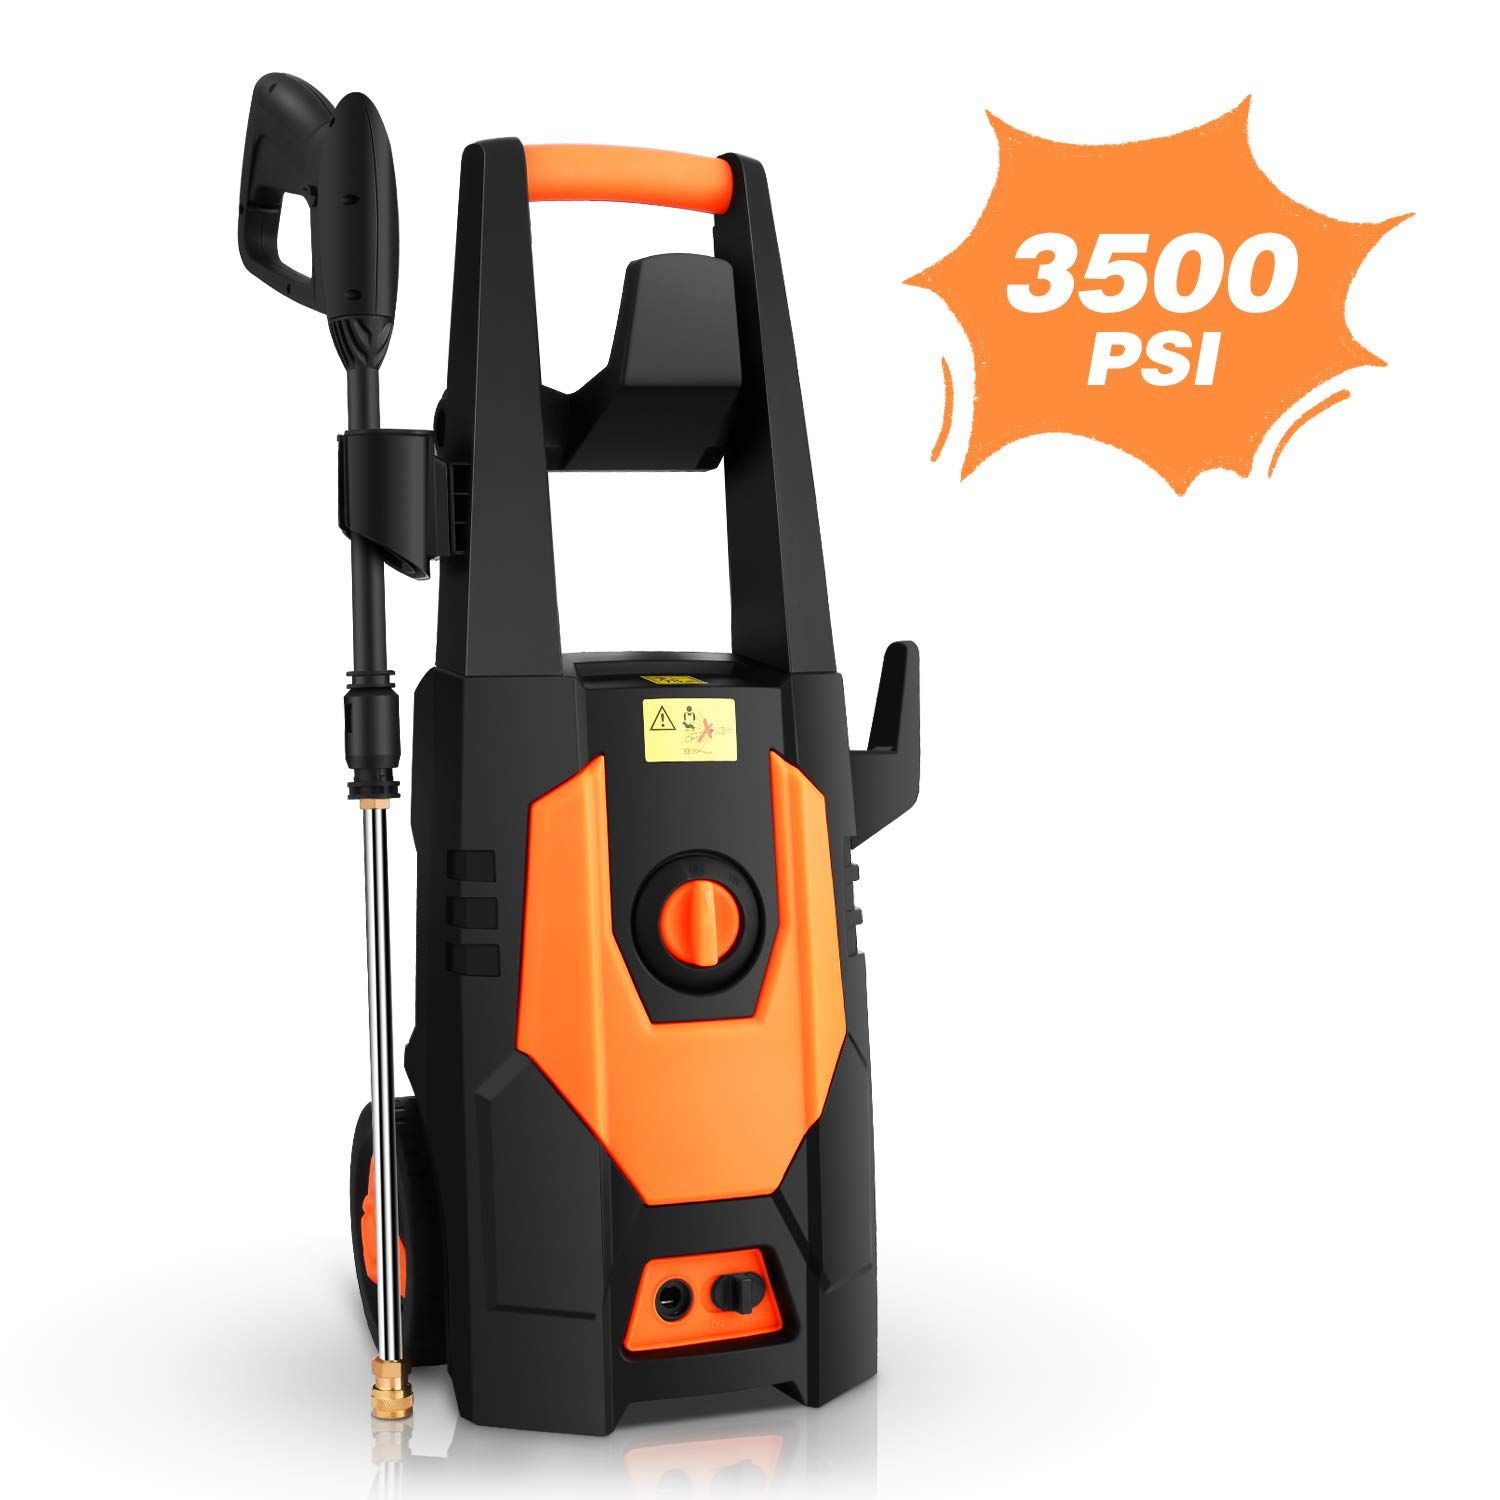 mrliance 3500PSI Electric Pressure Washer, 2.0GPM Electric Power Washer High Pressure Washer with Spray Gun, Brush, and 4 Quick-Connect Spray Tip Orange